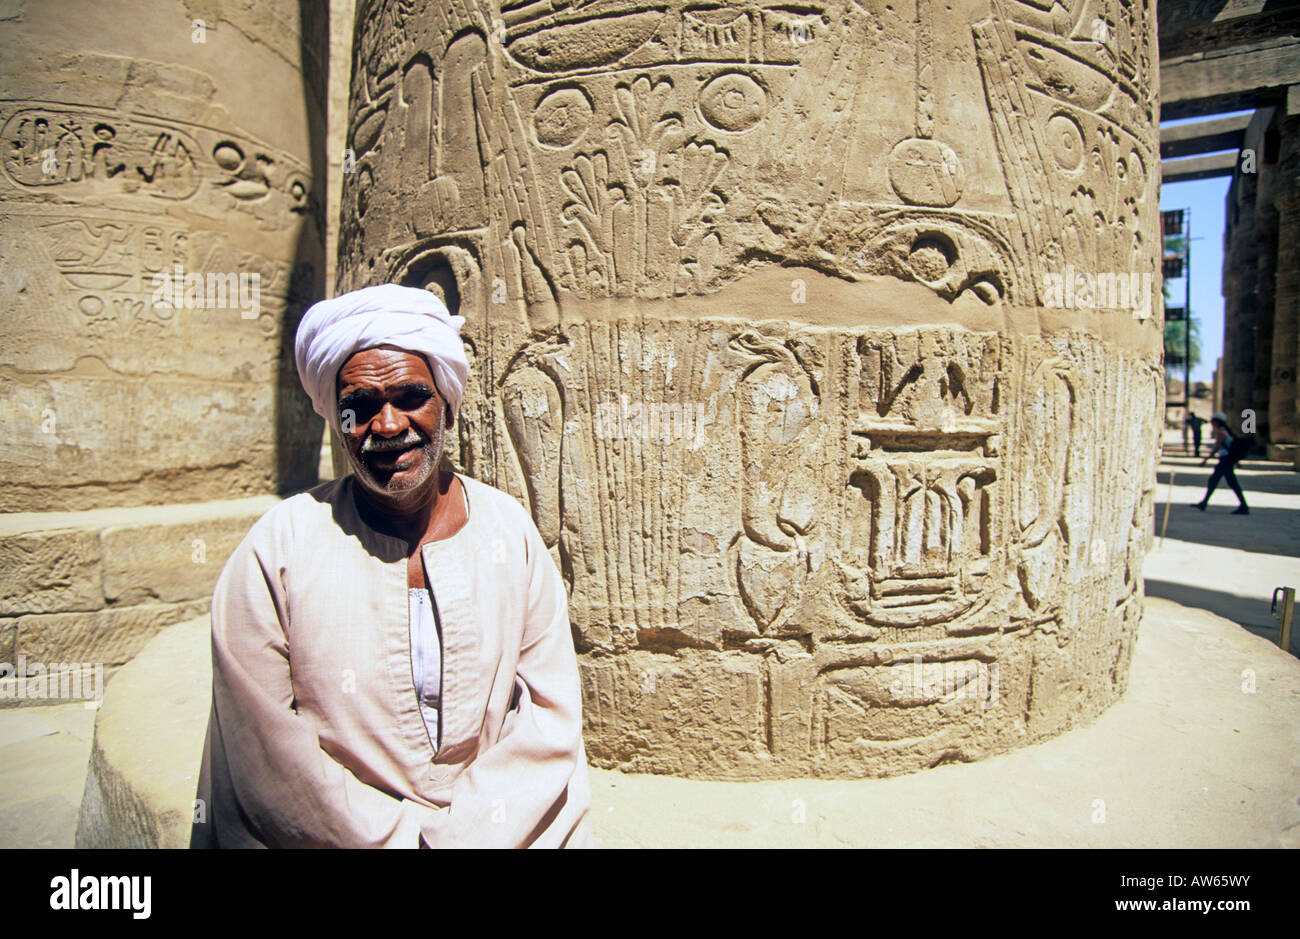 north africa upper egypt luxor the temple of karnak - Stock Image